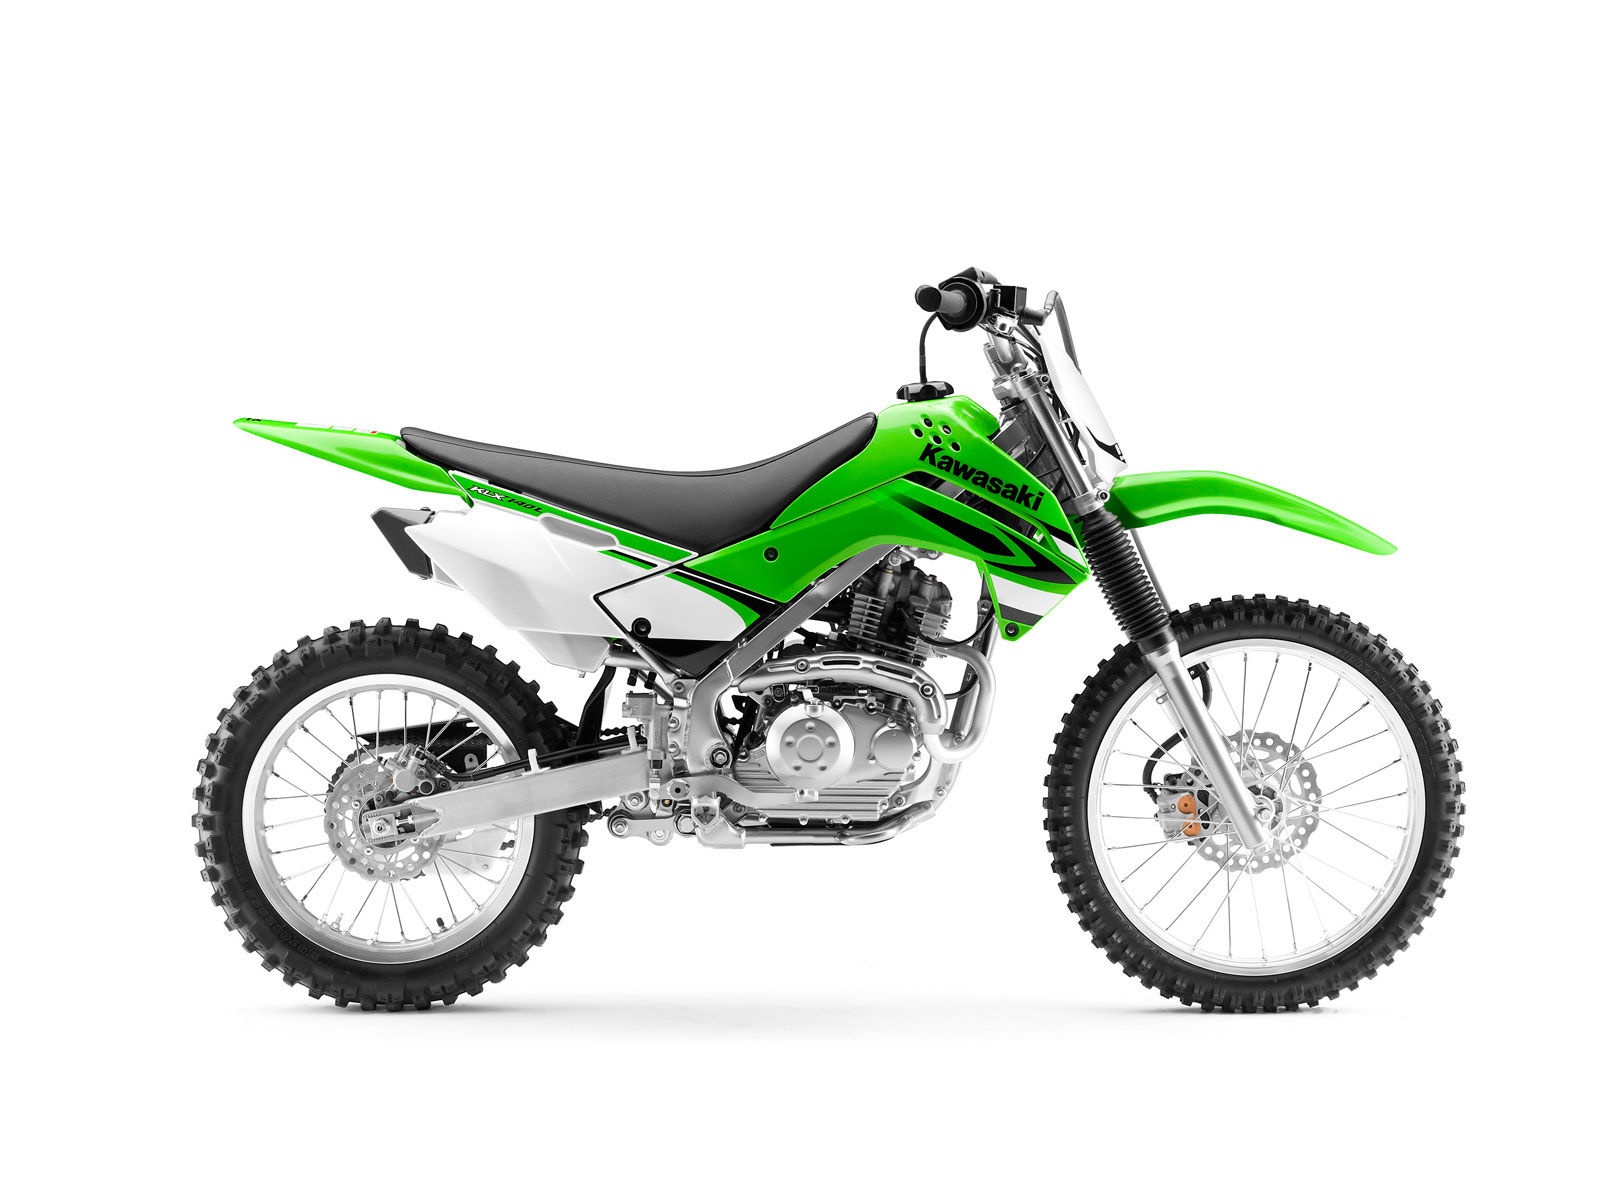 2011 Kawasaki KLX 140 L: pics, specs and information